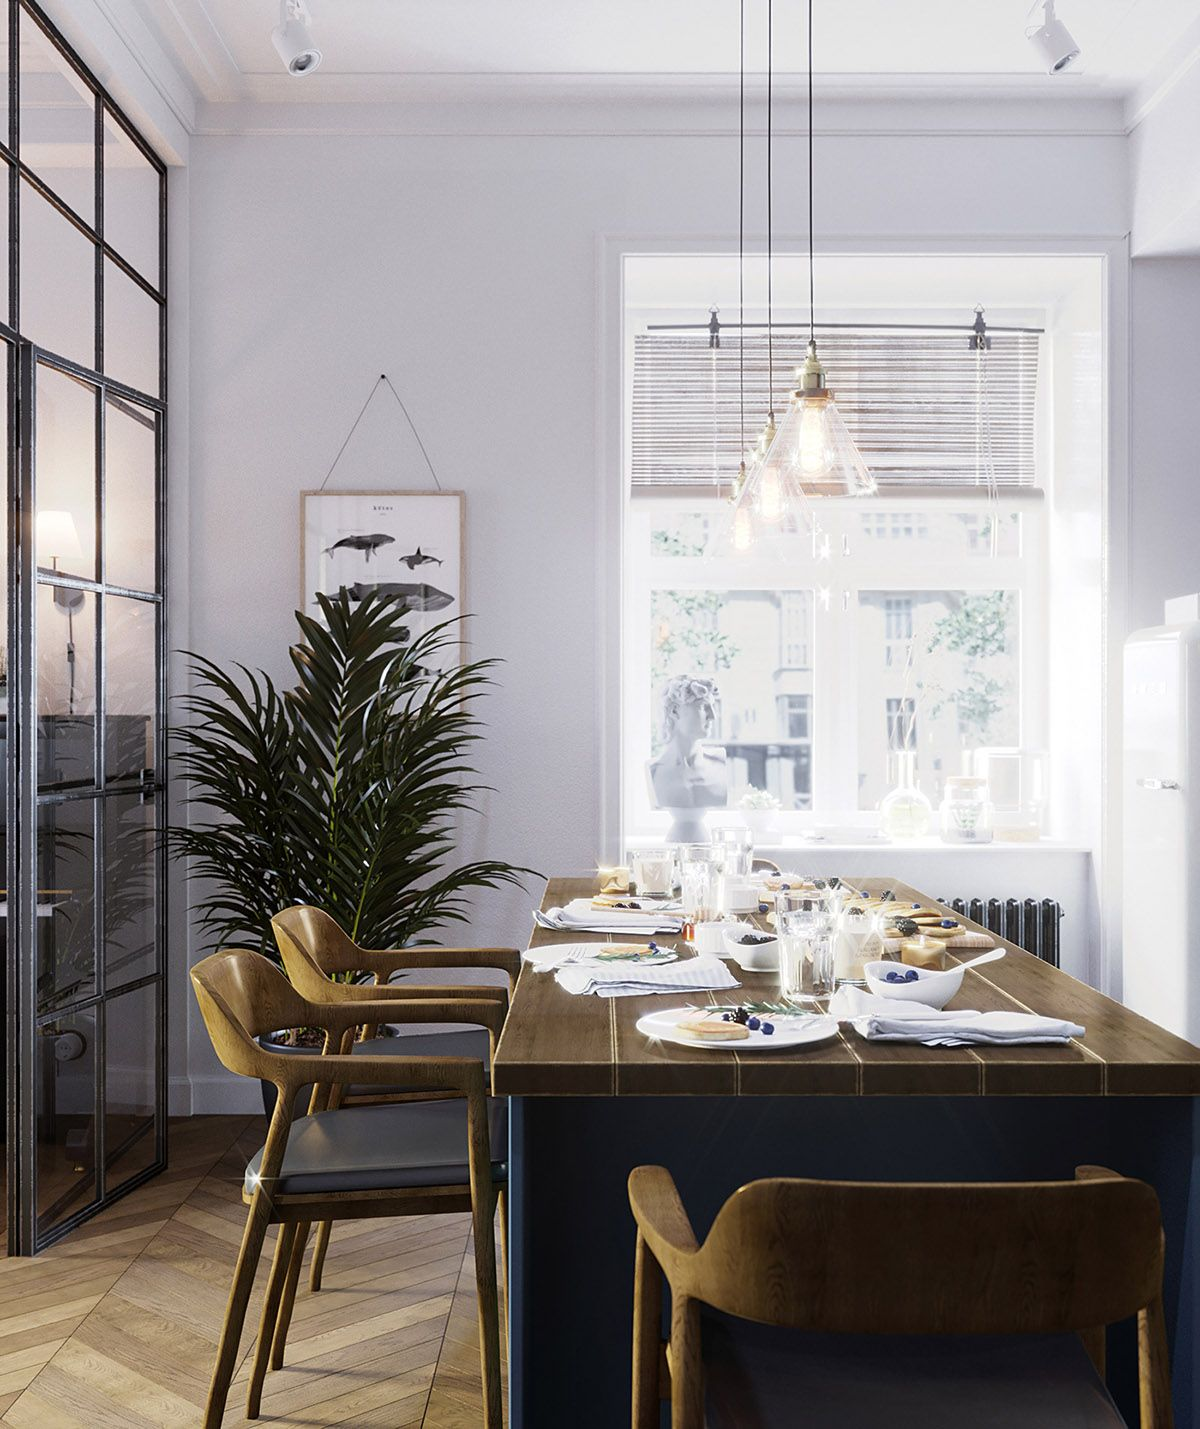 Feast Your Eyes Gorgeous Dining Room Decorating Ideas: Earthy Eclectic Scandinavian Style Interior